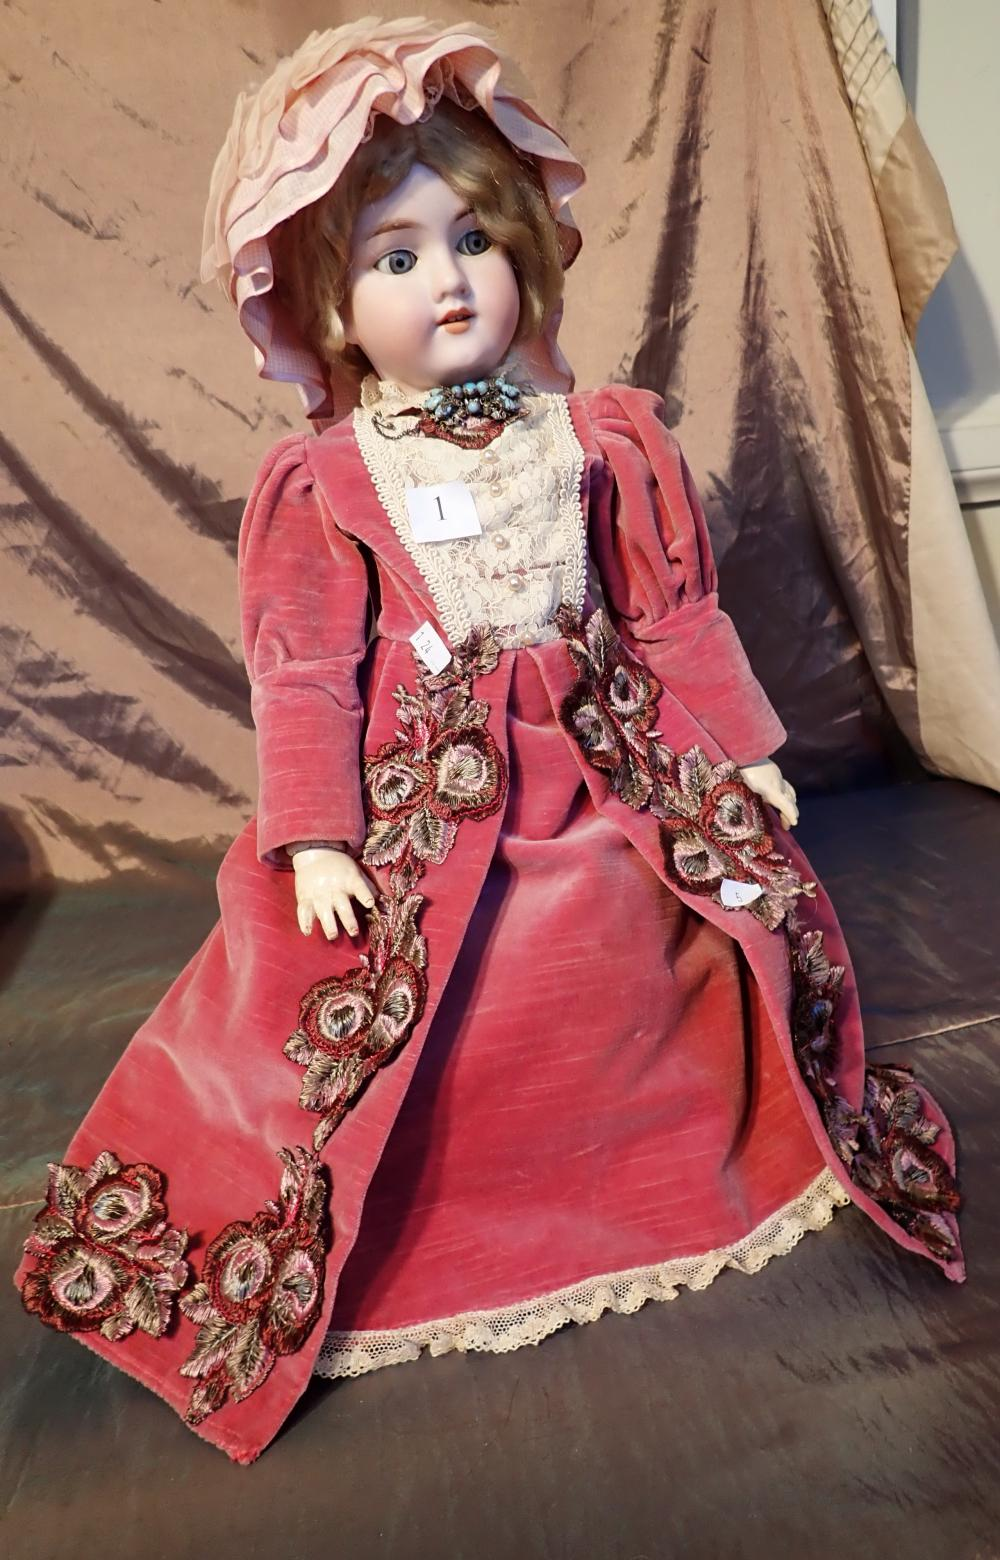 MADE IN GERMANY AM 390 DOLL MARKED A7M - OVERALL GOOD CONDITION, NICELY DRESSED IN VELVET DRESS WITH EMBROIDERY, WITH PANTALOONS UNDERNEATH, SOCKS & SHOES